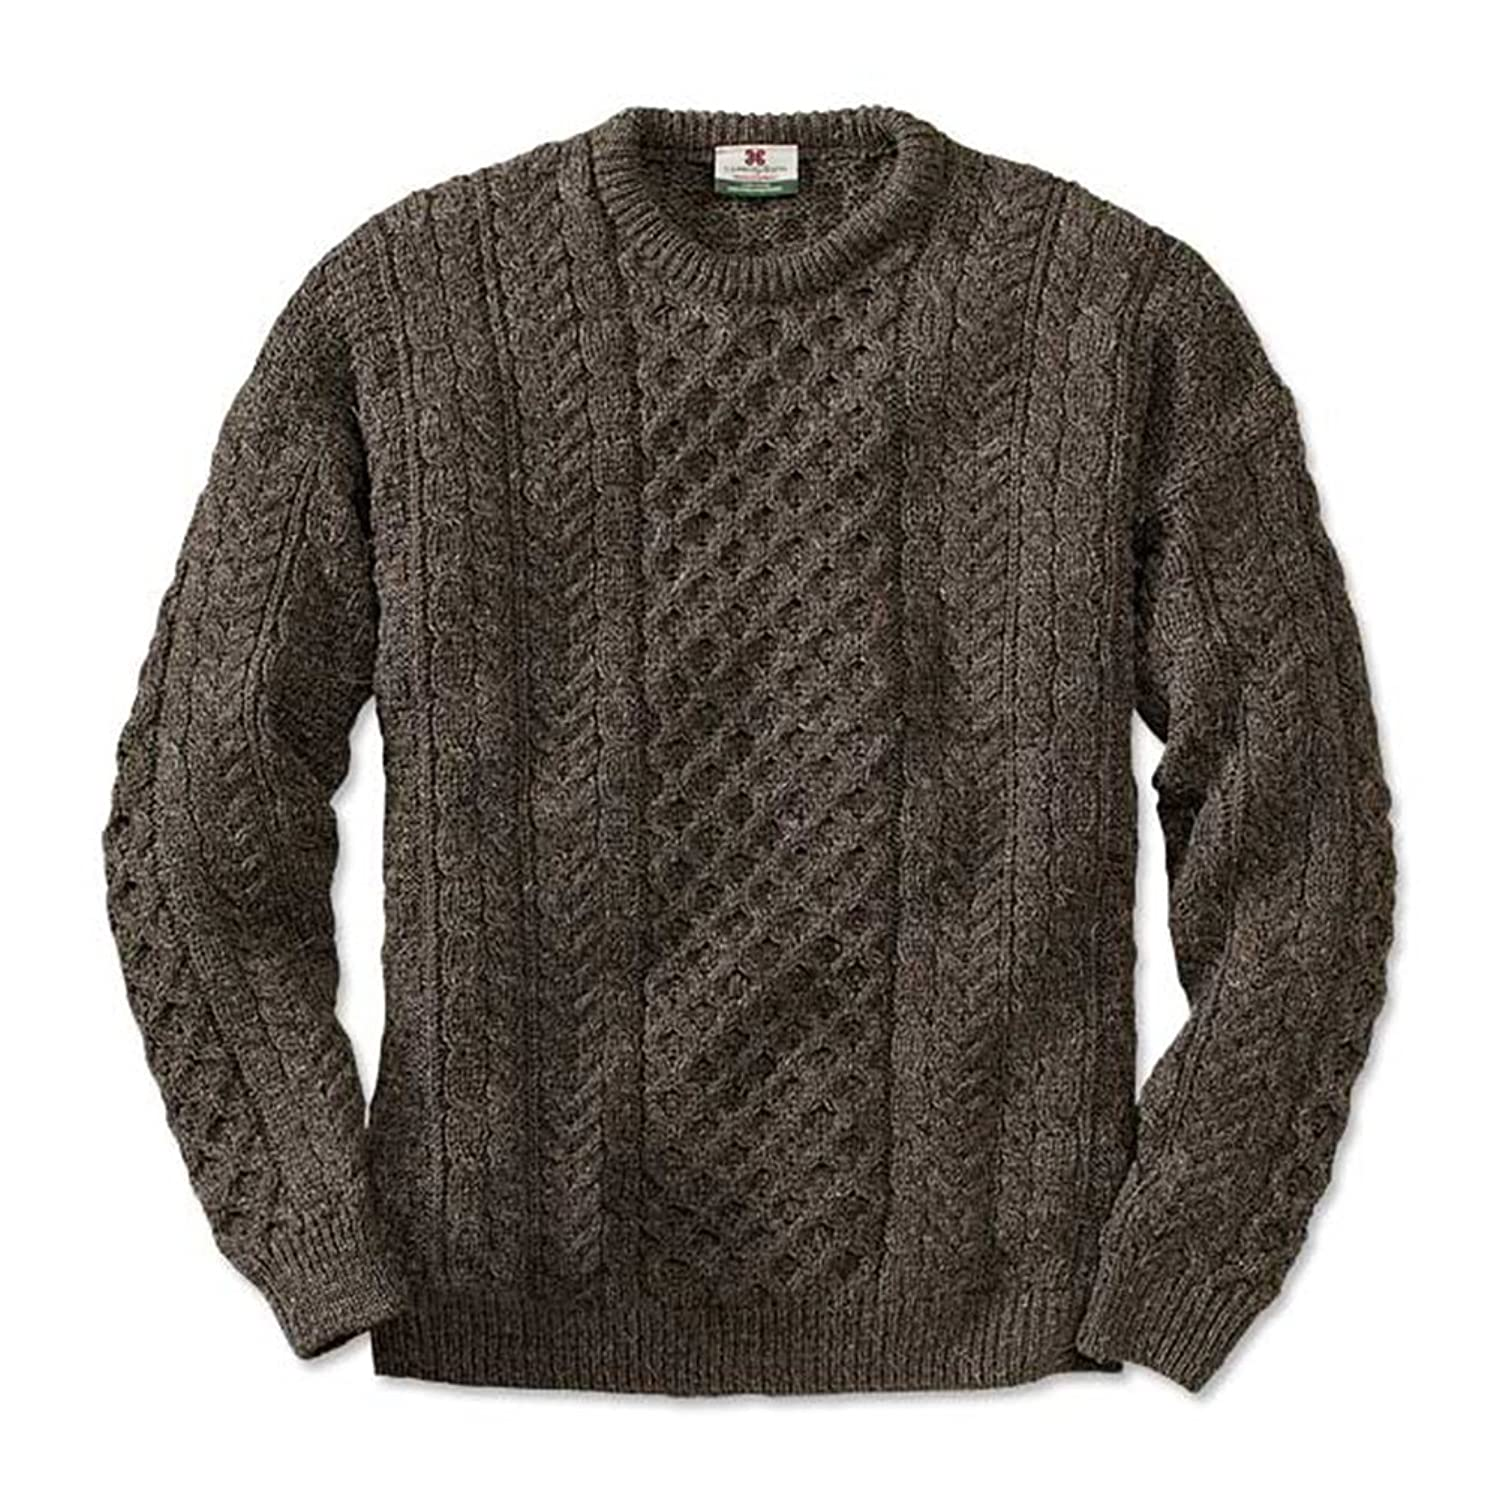 100% Pure Wool Irish Fishermans Rib Sweater with Patches by West ...